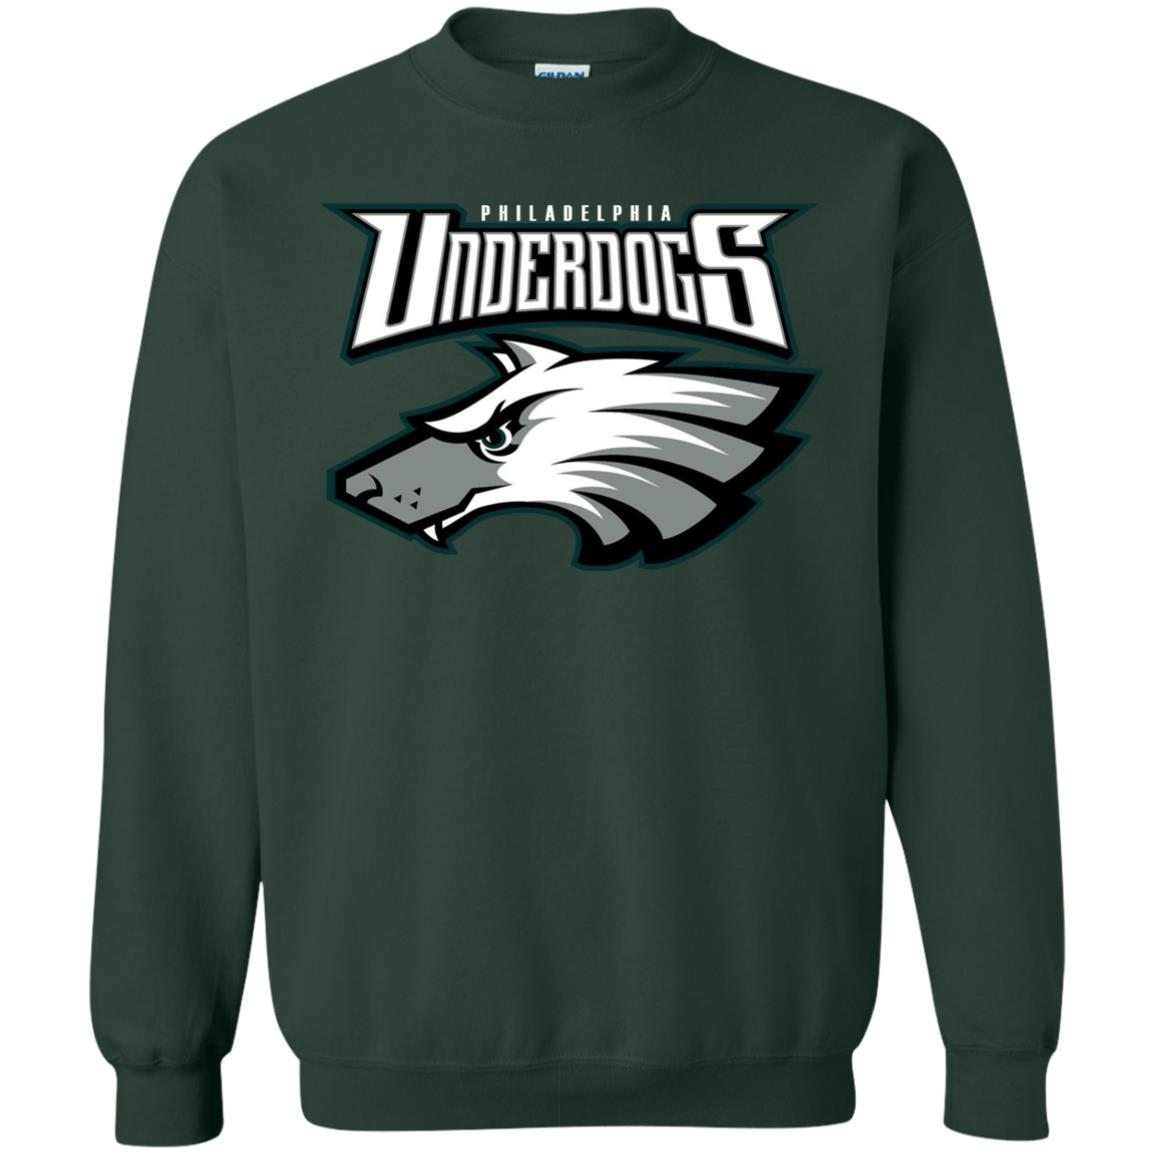 sale retailer b12d8 213ae Philadelphia Eagles Underdogs 2 Sweatshirt